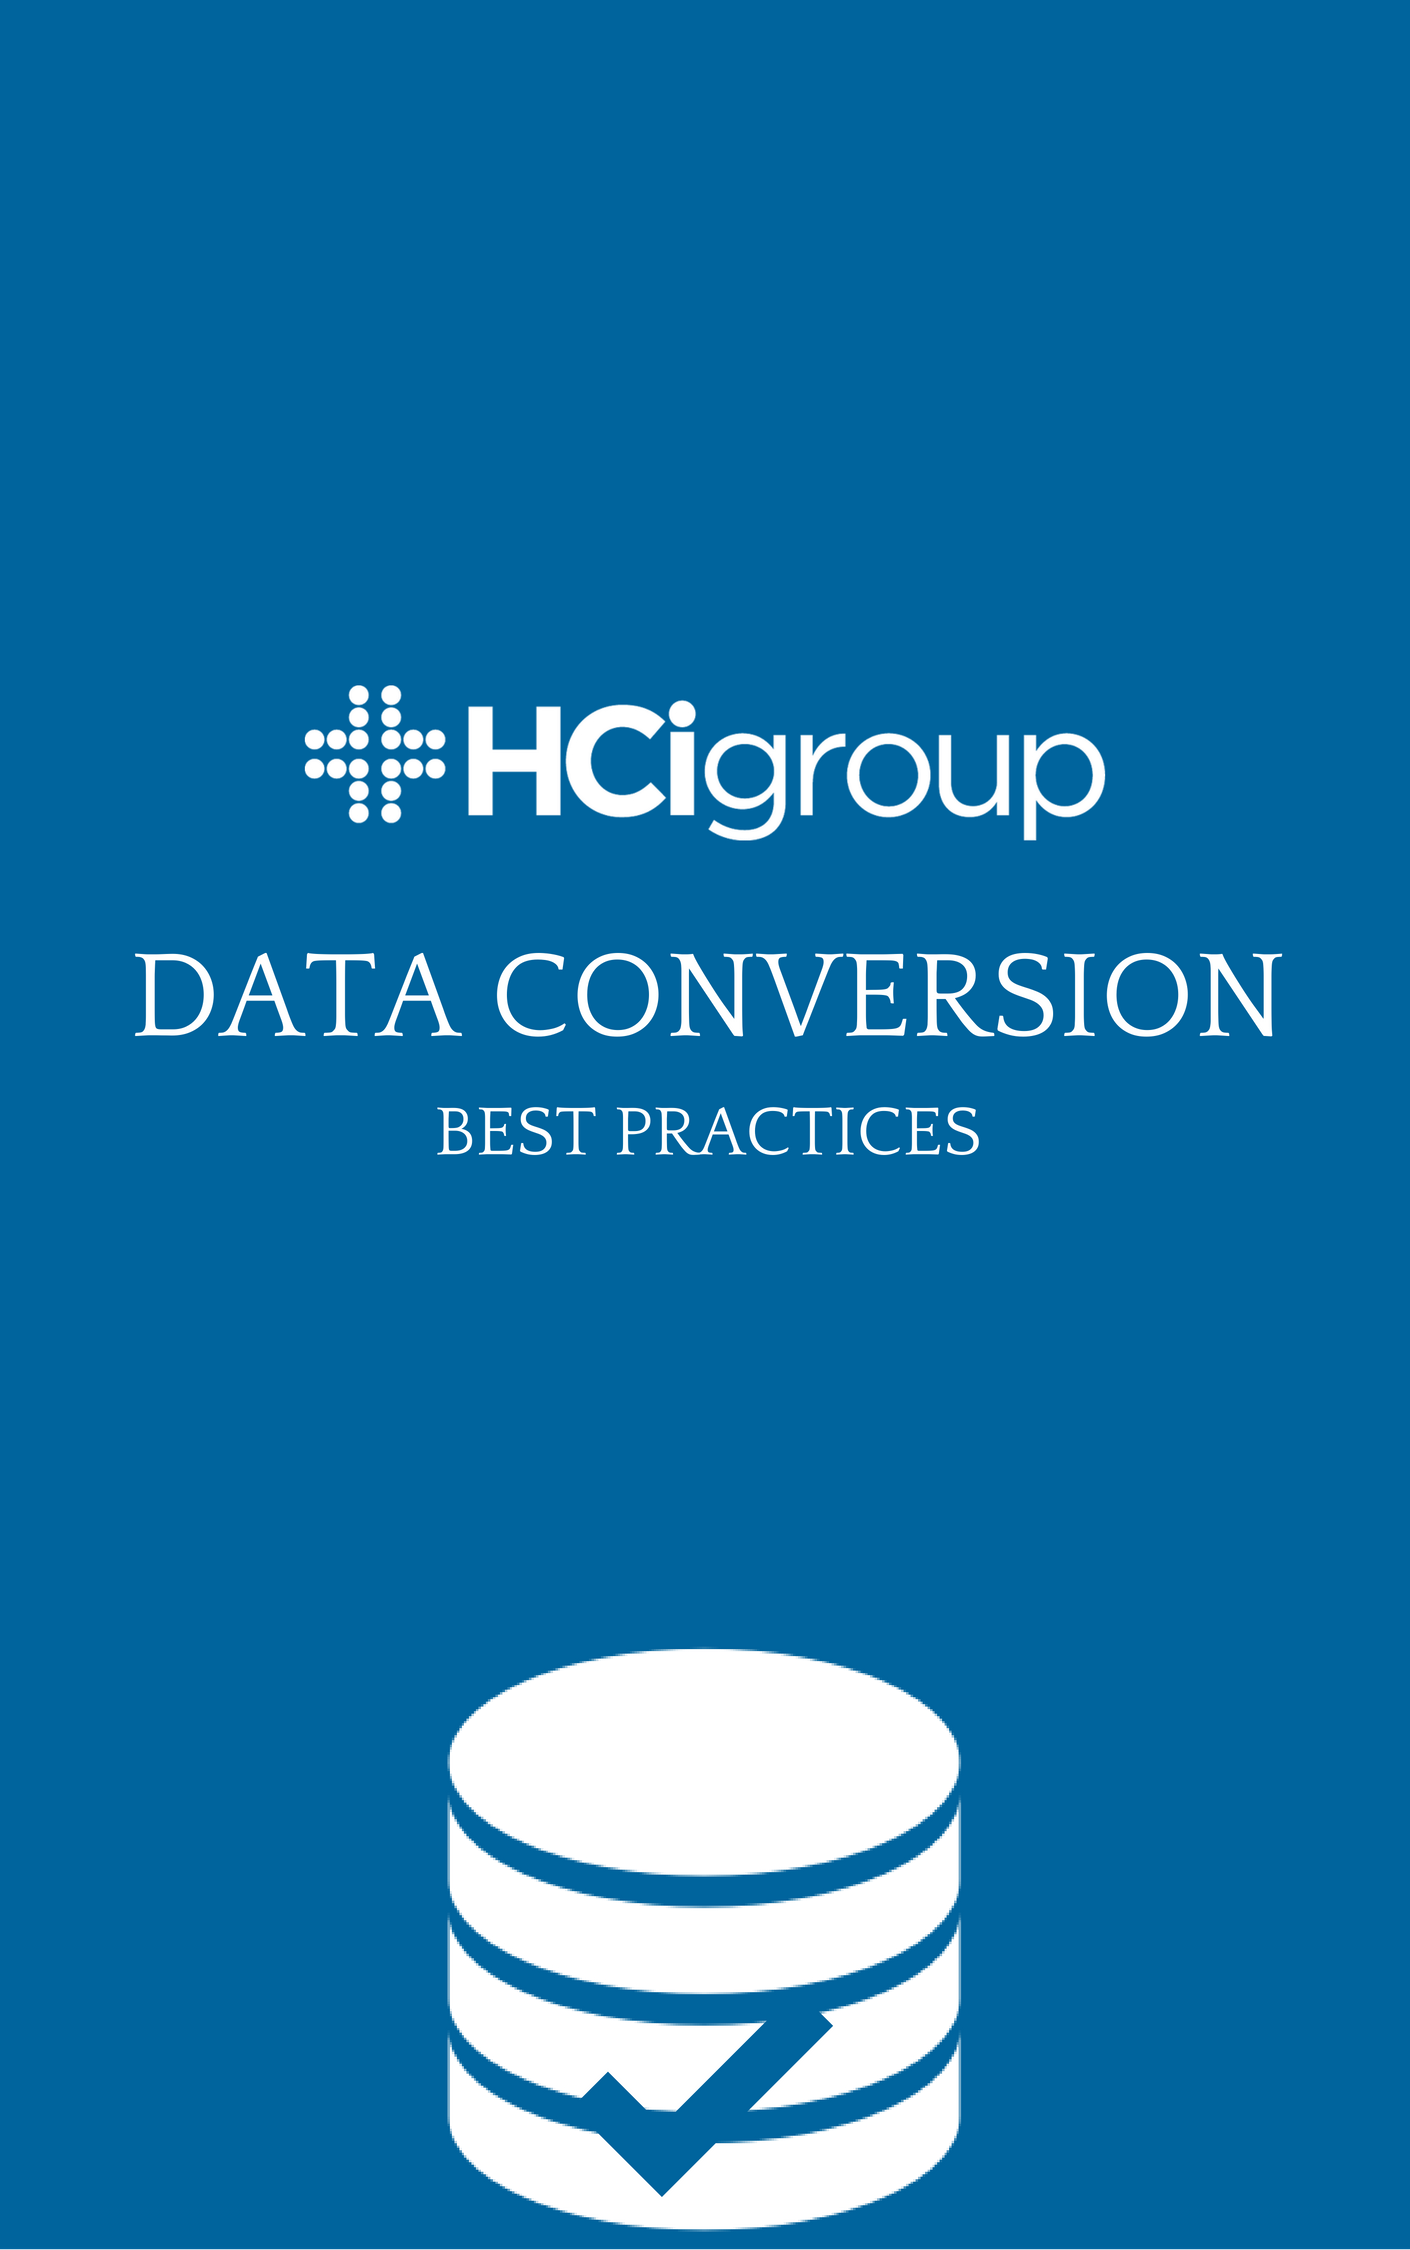 Data Conversion Best Practices Download Paper